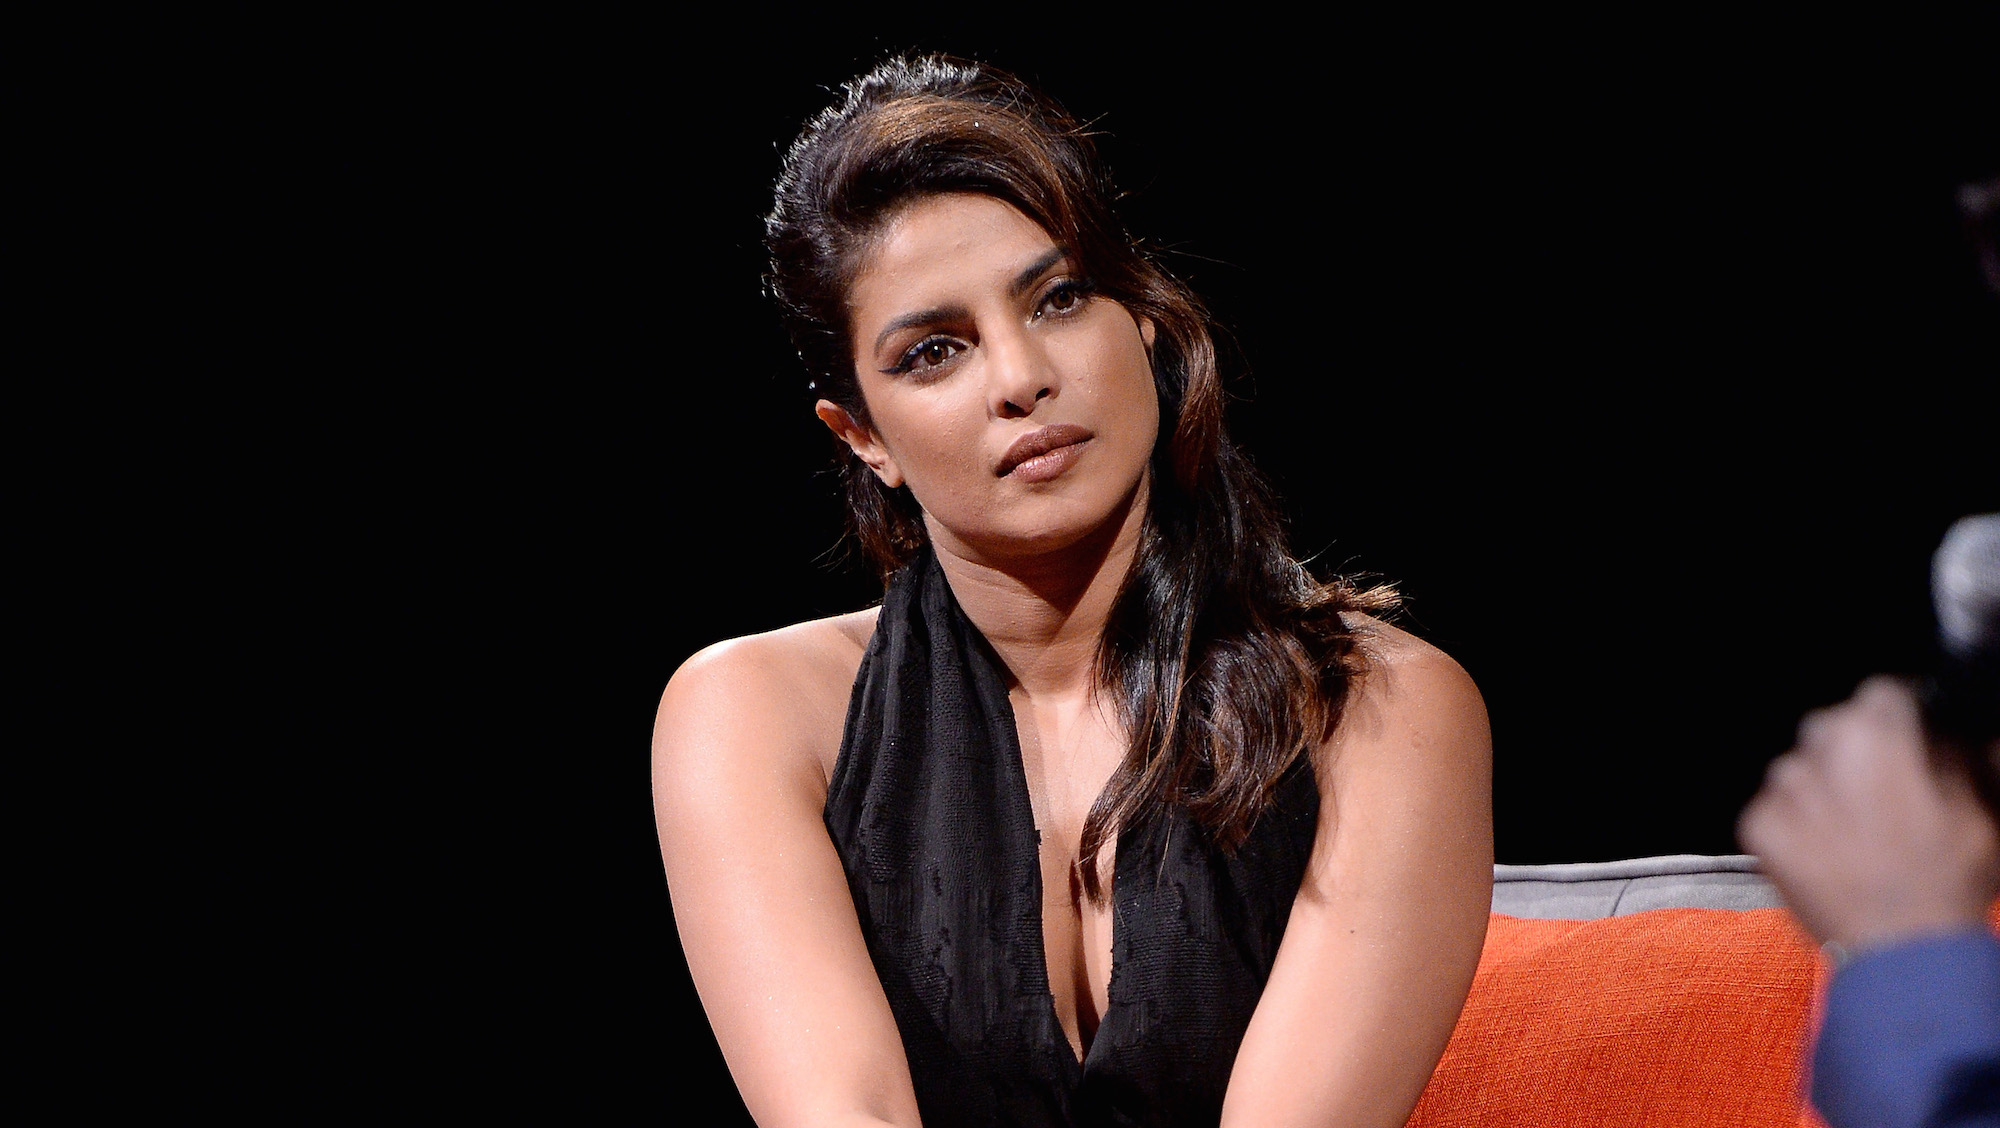 Priyanka Chopra lost a role for being 'too ethnic' and she's not standing for it